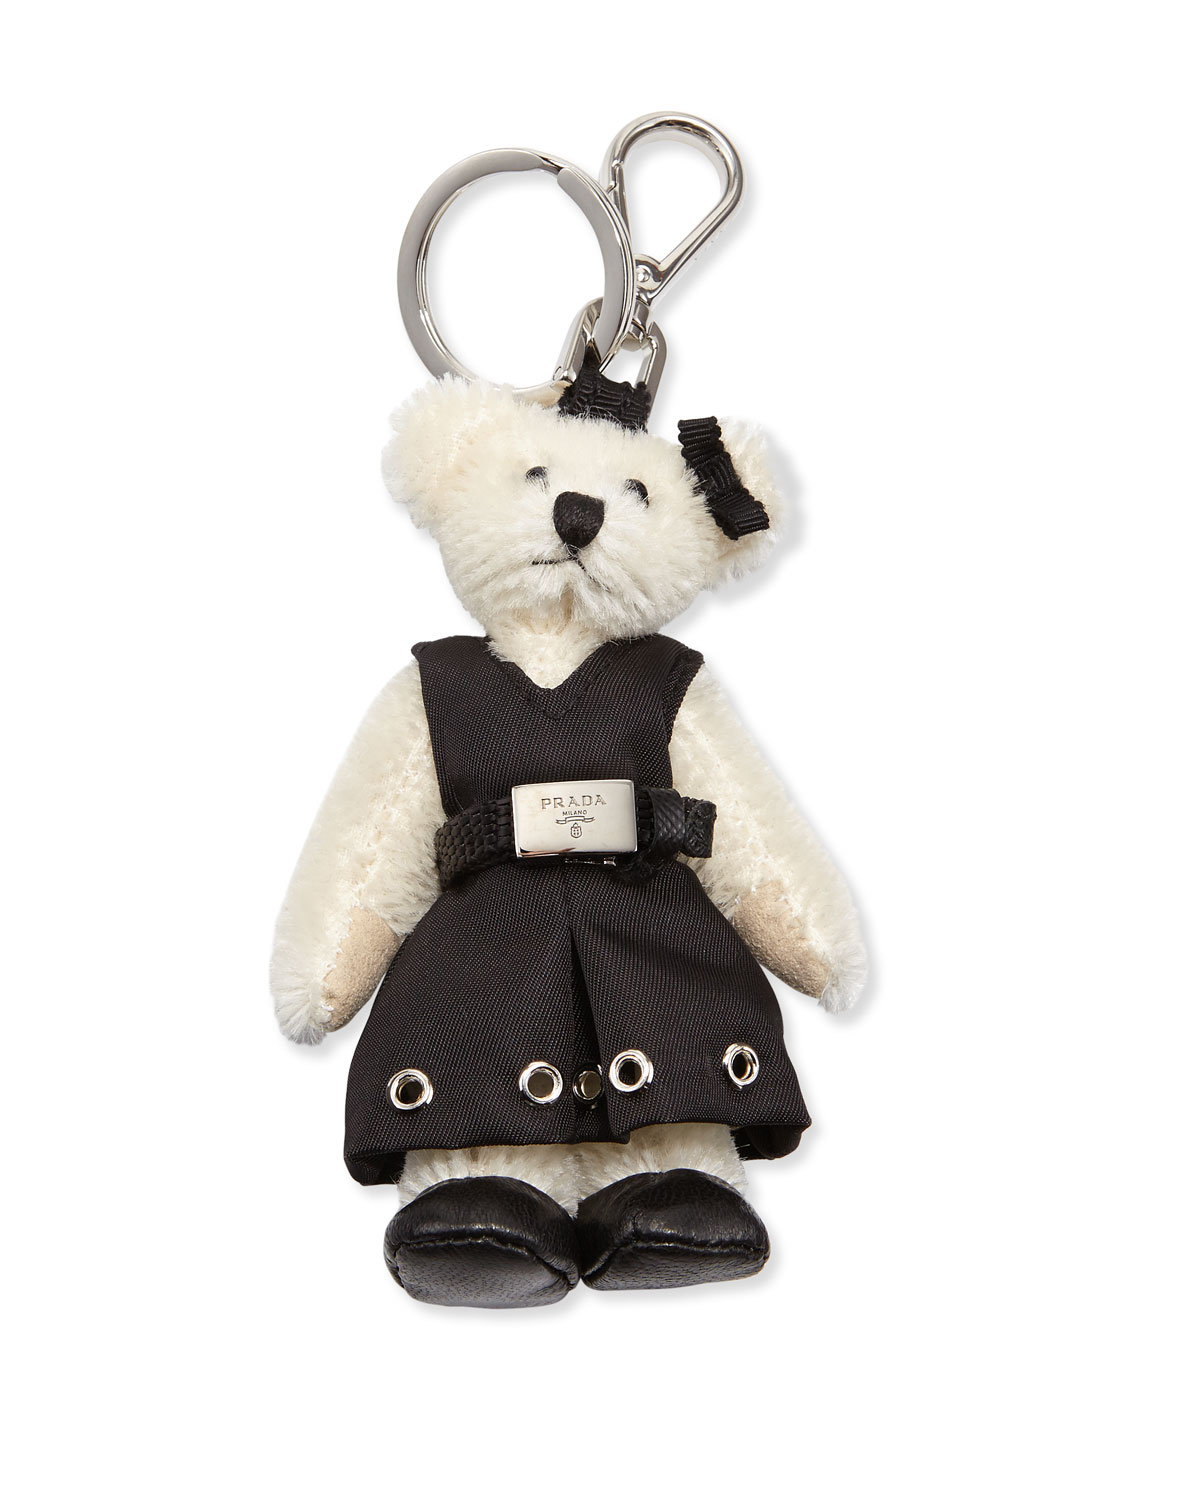 d1a7c90d84fc97 Prada Marlene Teddy Bear Charm for Handbag, White/Black (Bianco/Nero ...